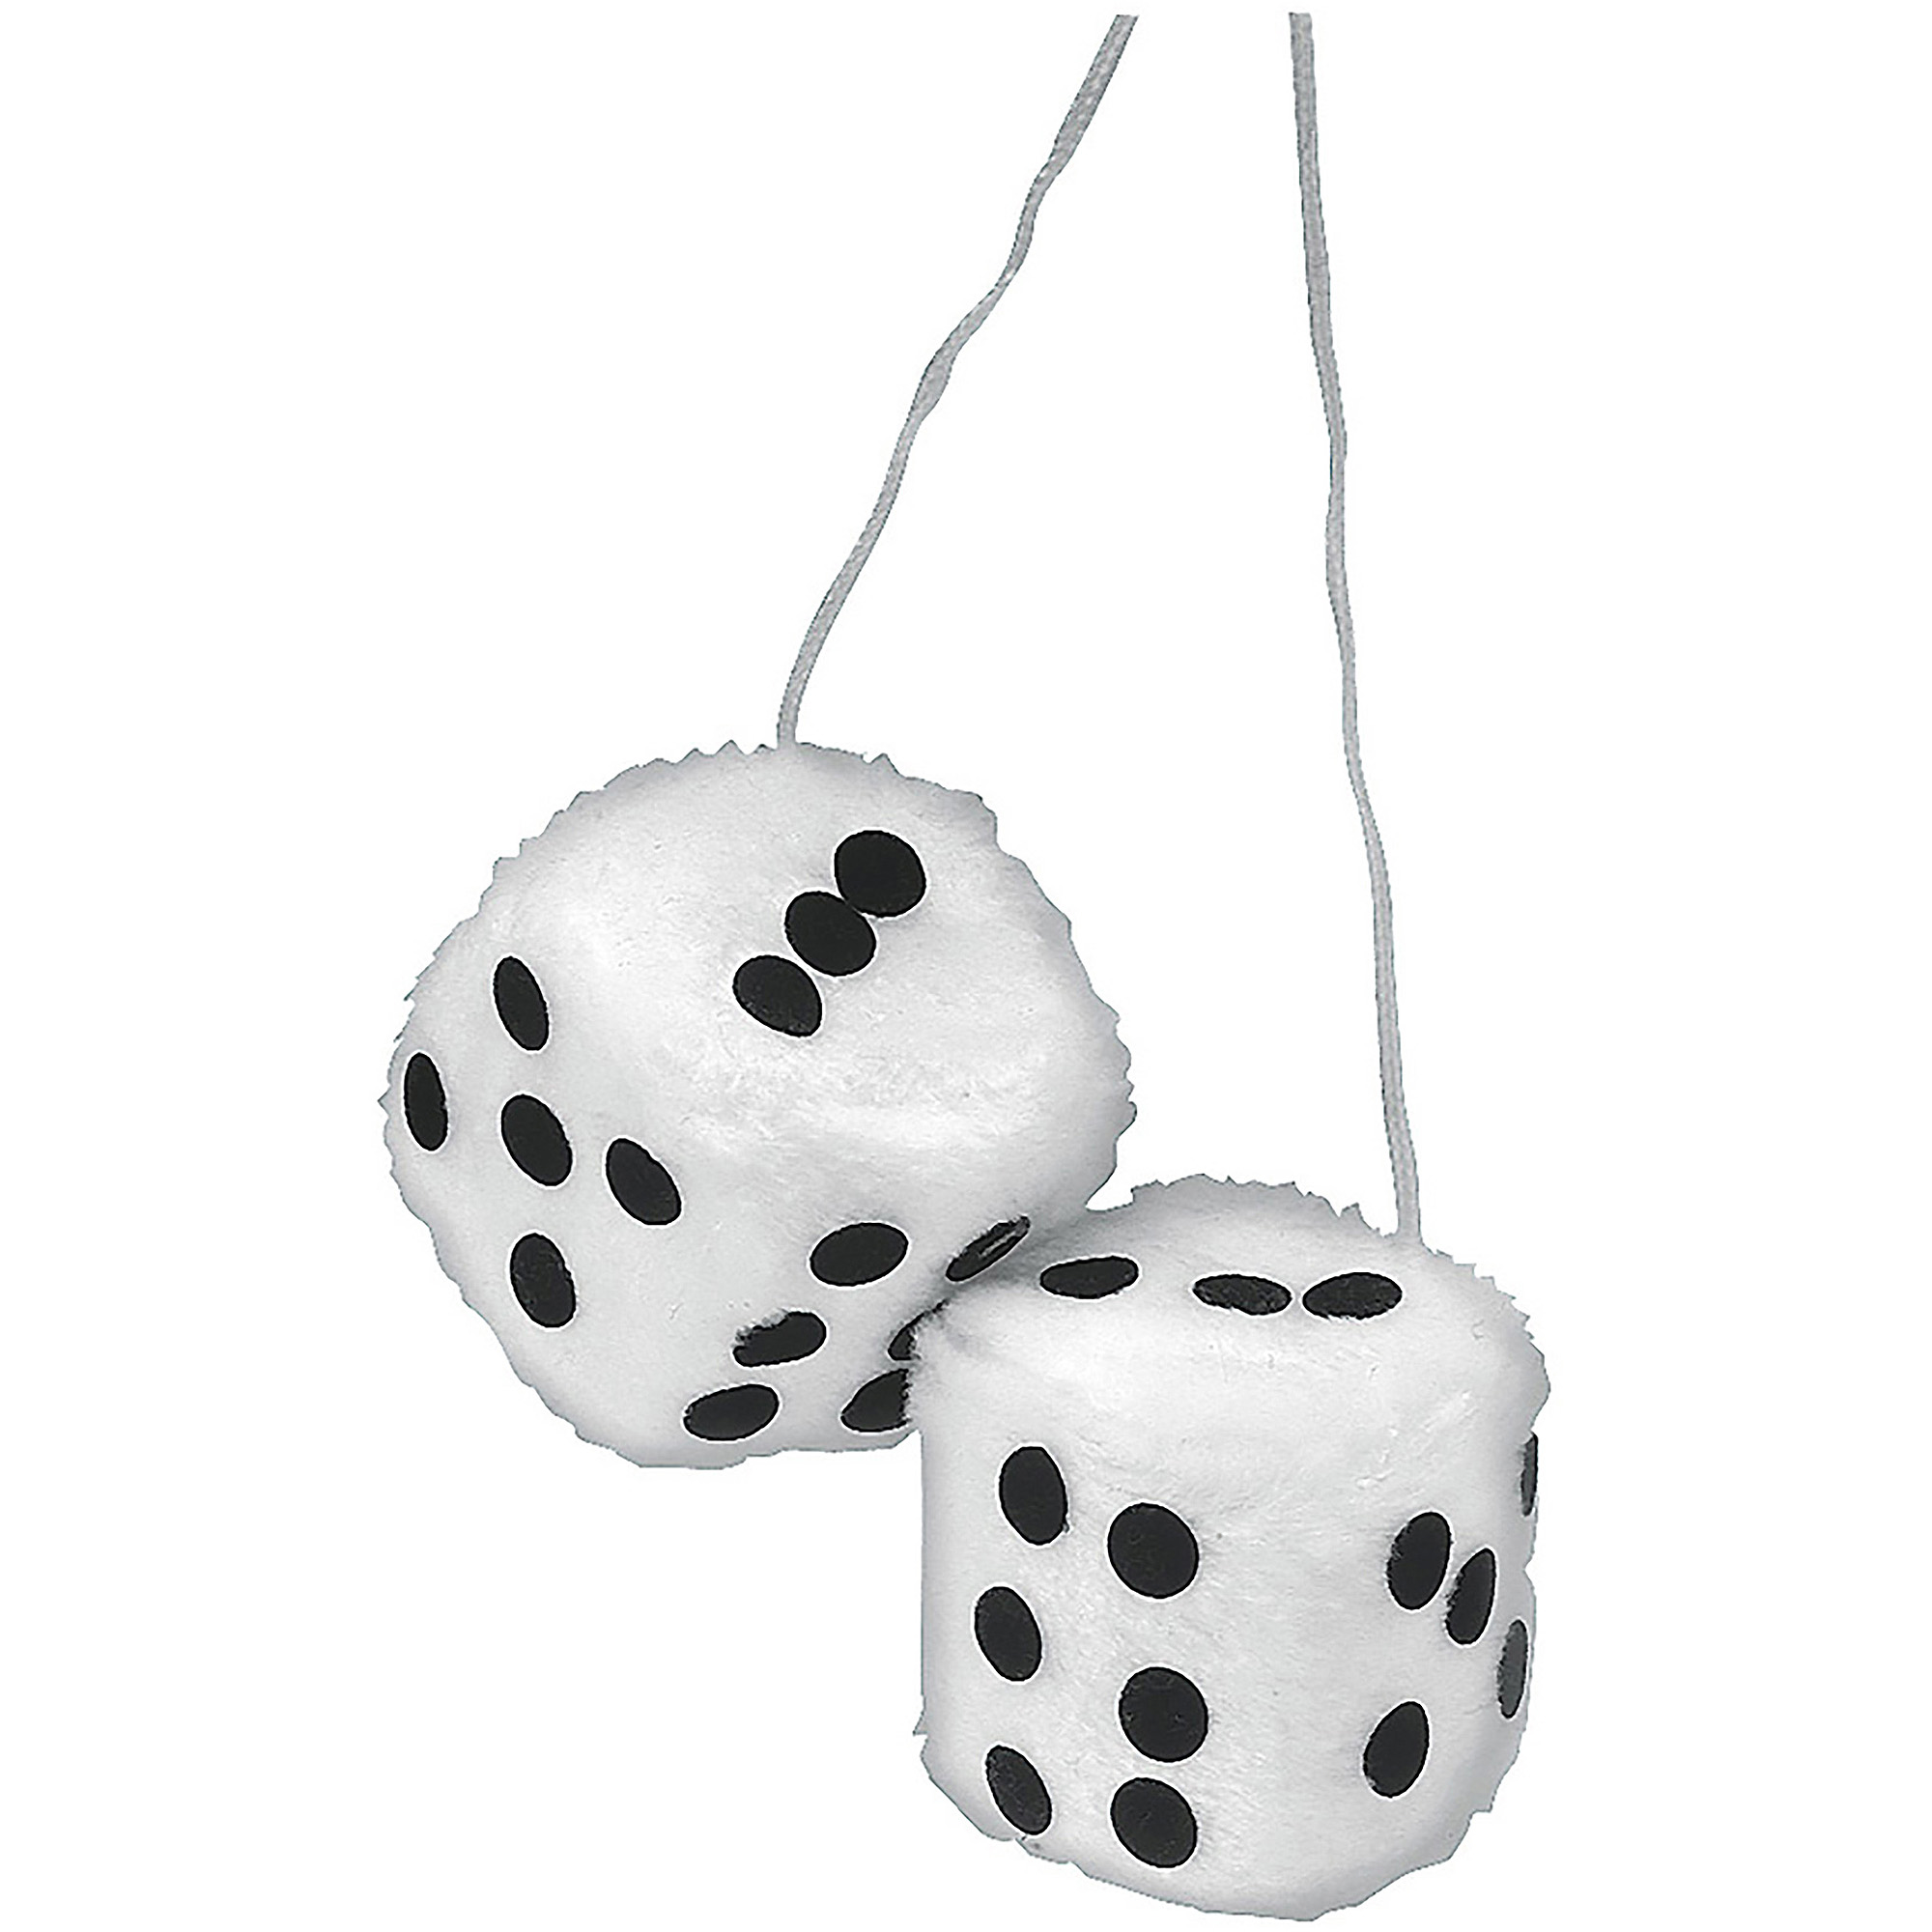 Big Furry Fluffy Jumbo White Car Dice With Black Spots